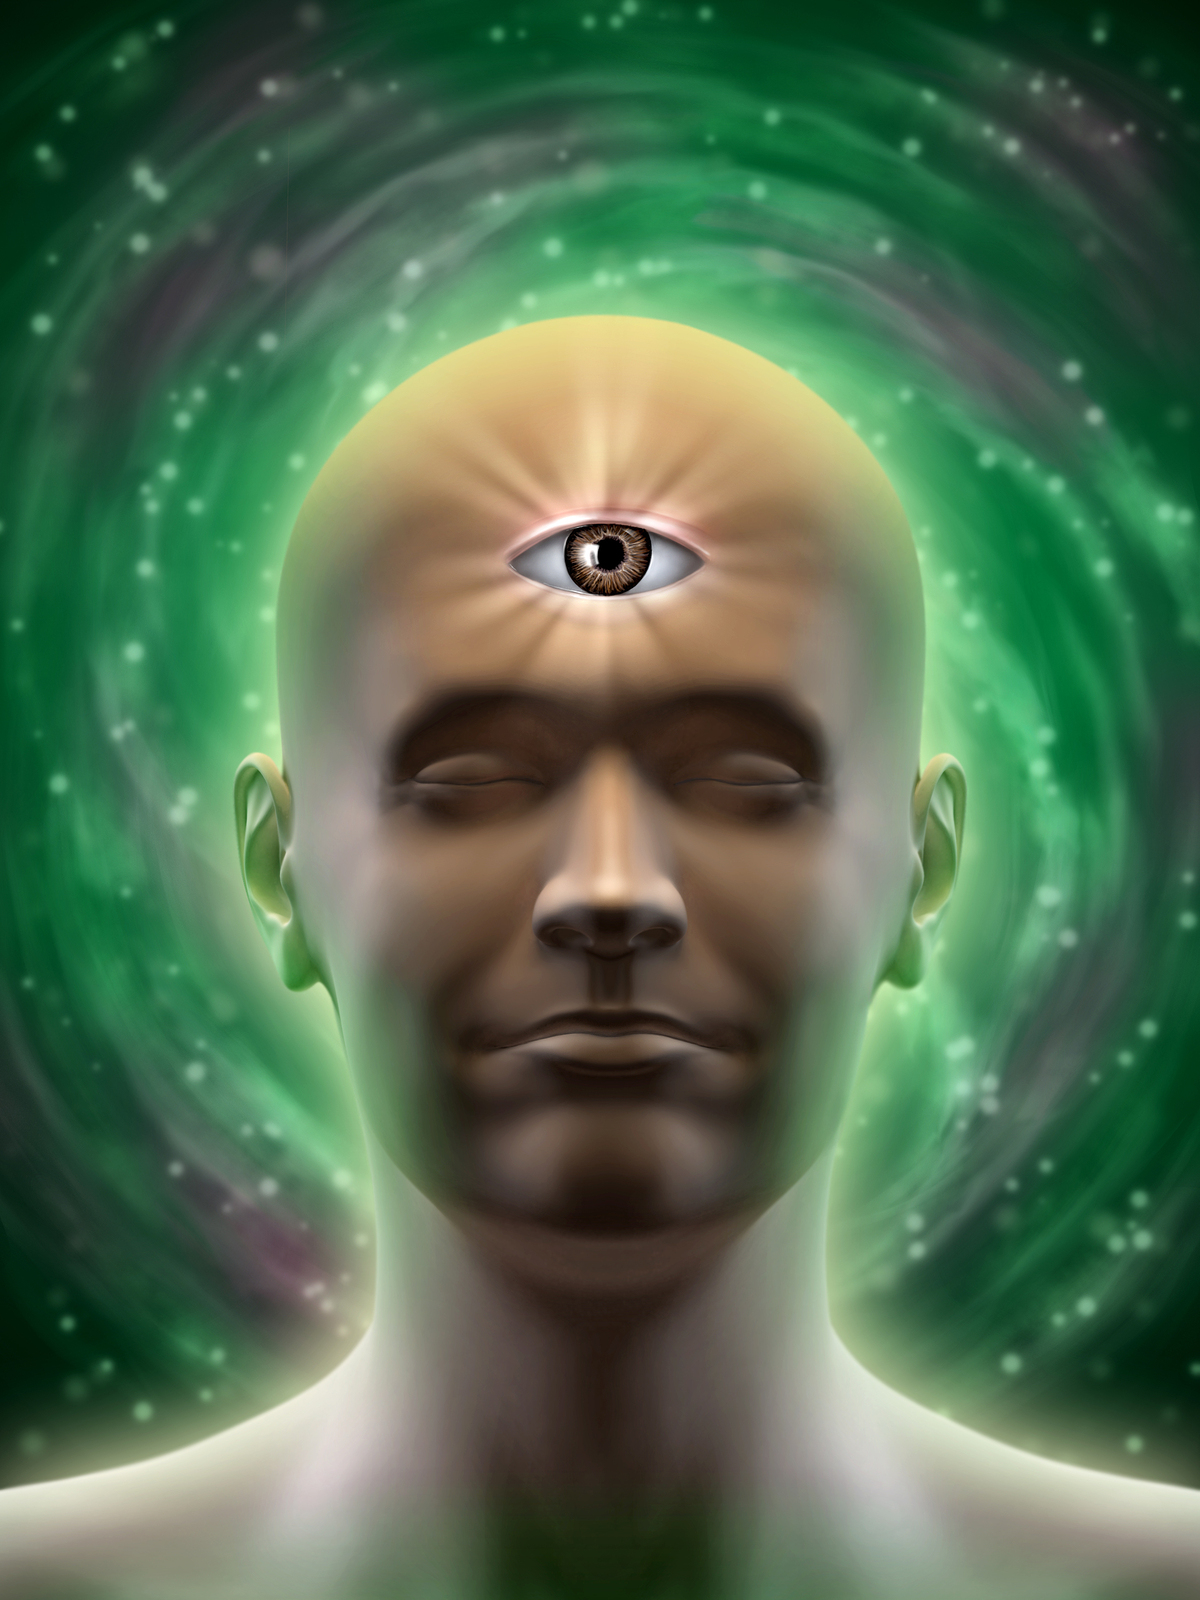 The KUNDALINI ELECTRIC SHOCK!! THE OPEN THIRD EYE POWERED BY THE ...